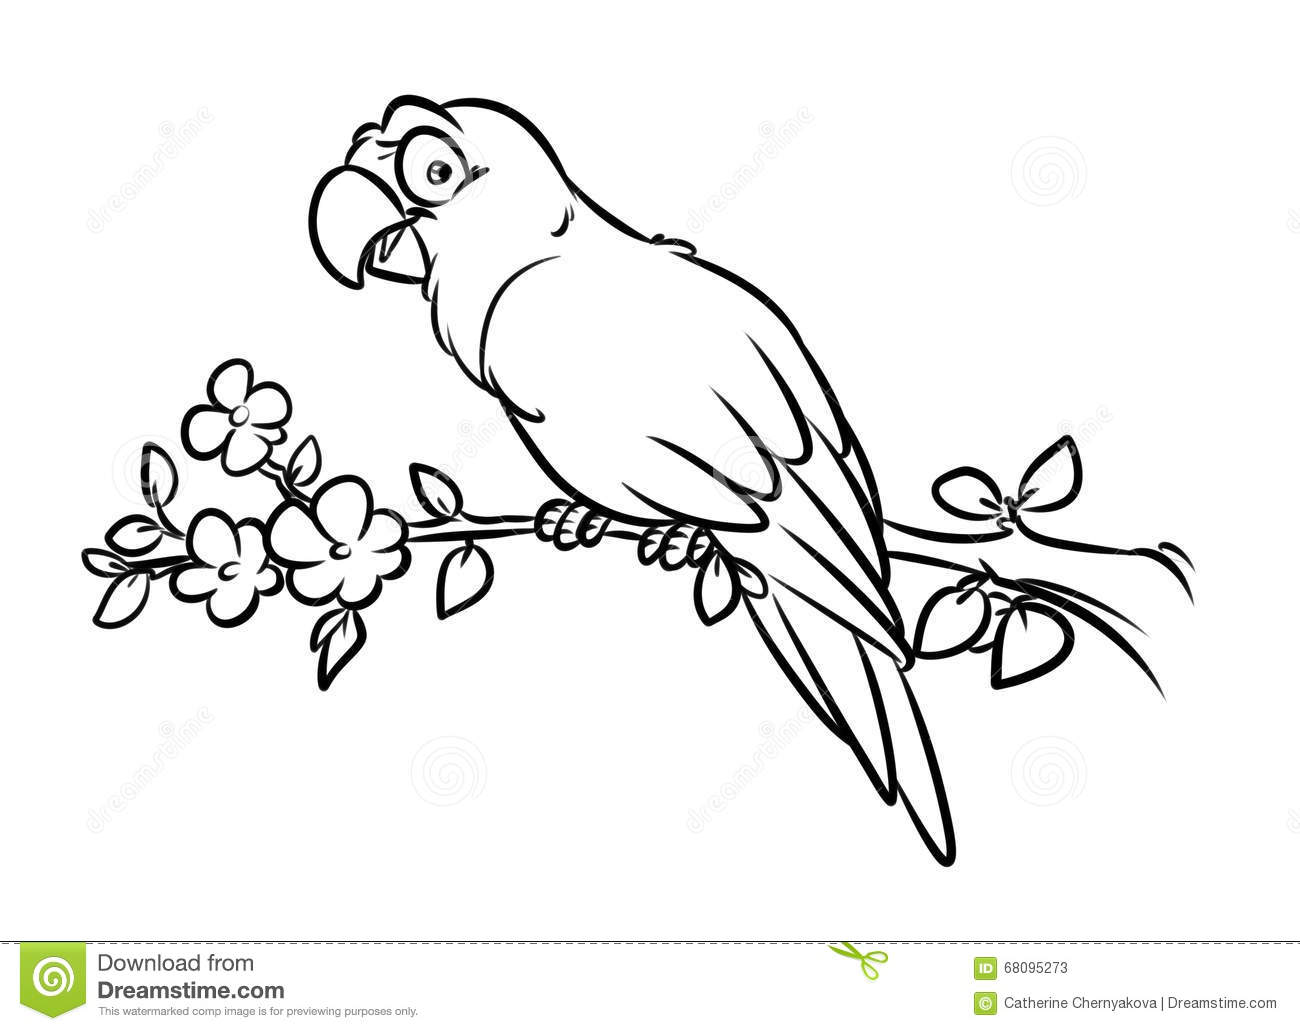 parrot coloring pages cartoon illustration stock illustration